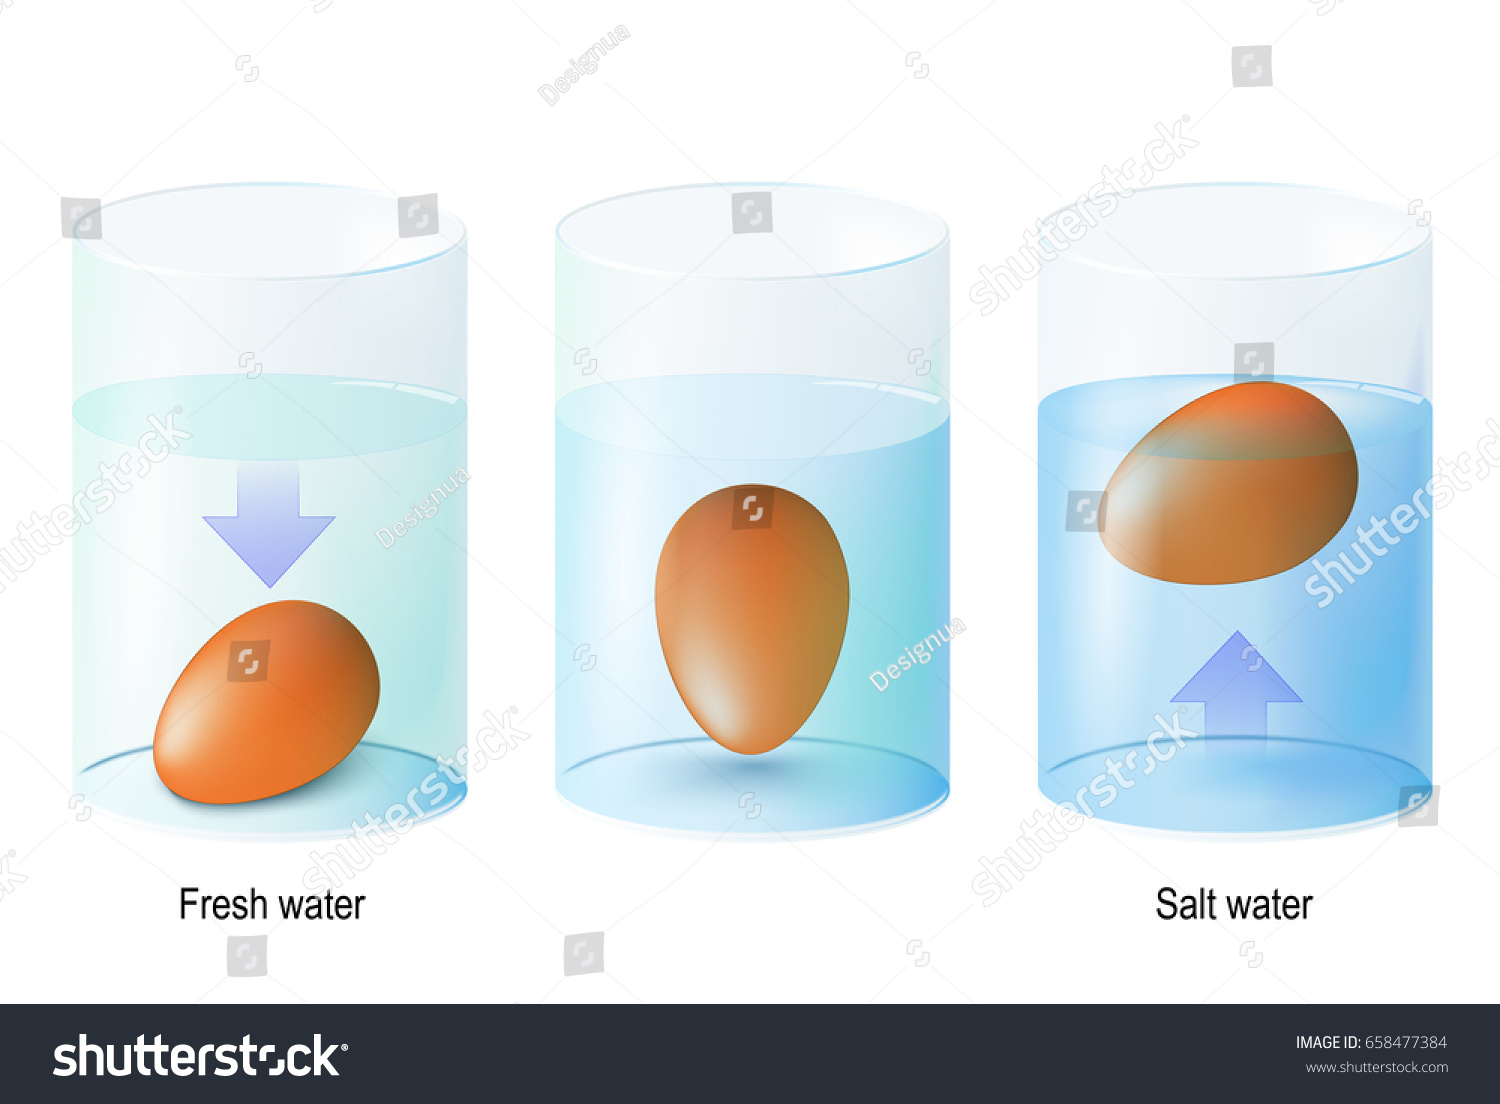 Test Egg Egg Float Science Experiments Stock Vector (Royalty